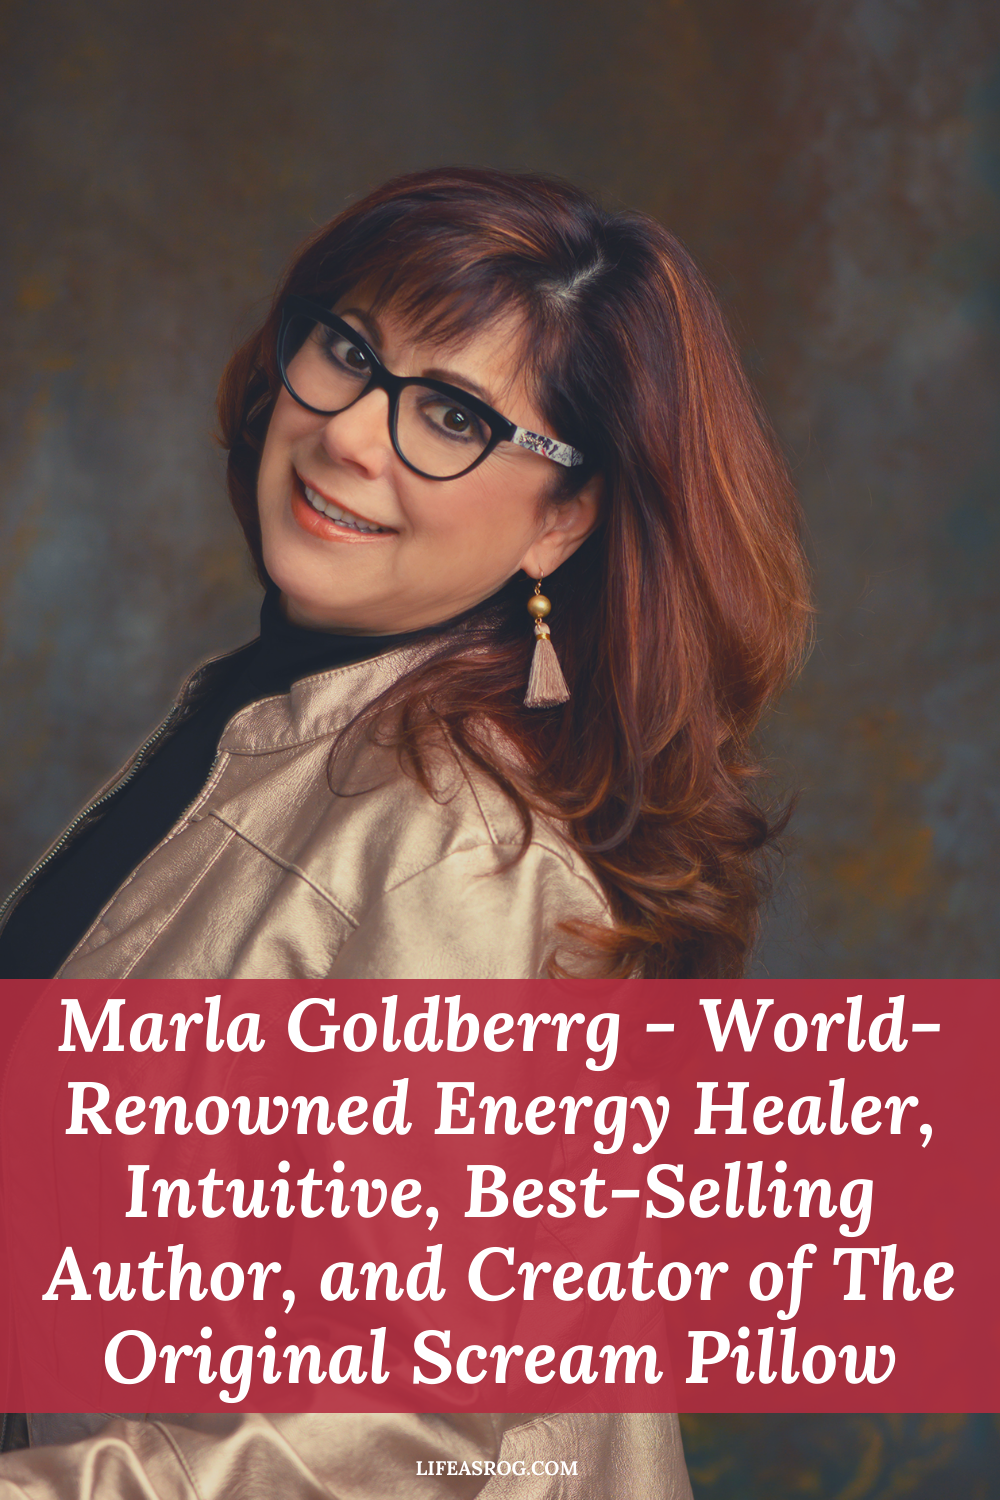 Marla Goldberrg - World-Renowned Energy Healer, Intuitive, Best-Selling Author, and Creator of The Original Scream Pillow